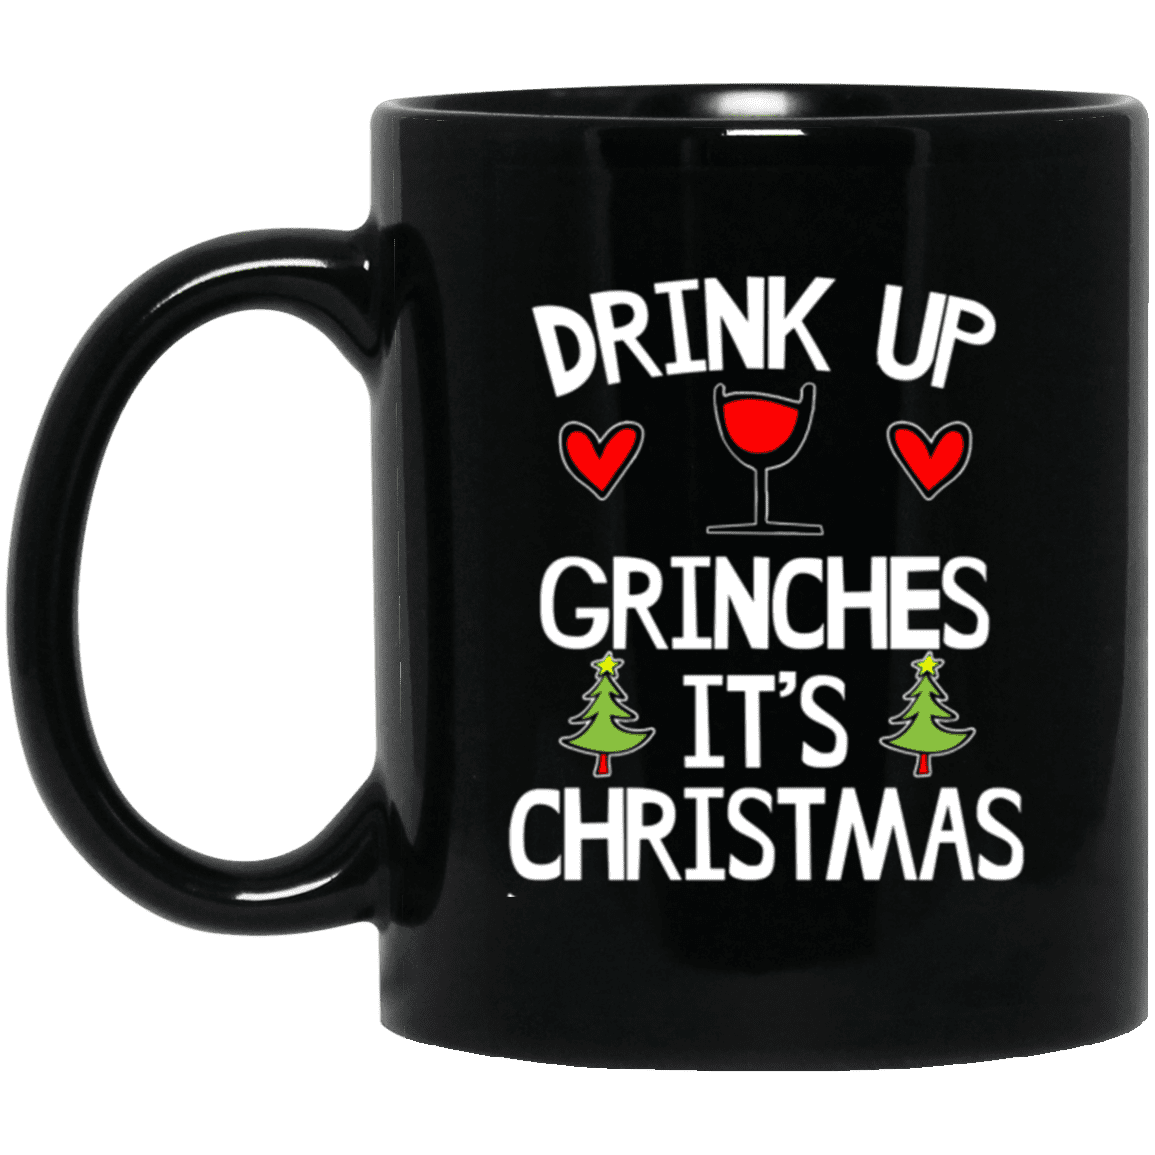 Limited Edition Christmas Drink Up Black Mug